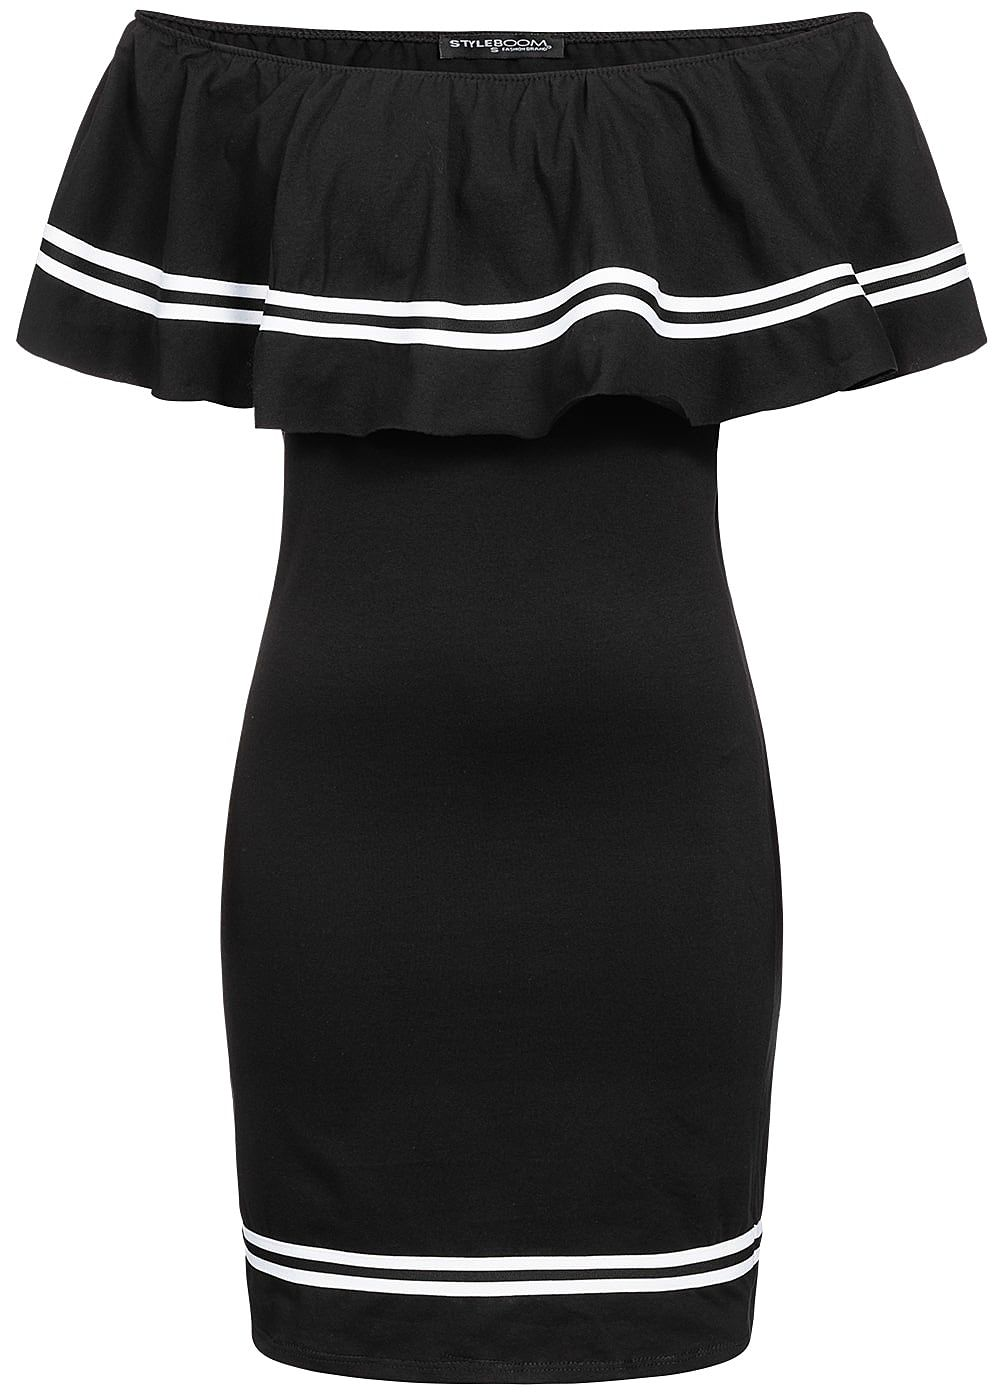 Styleboom Fashion Damen Off Shoulder Stripe Dress schwarz - Art.-Nr.: 19046302